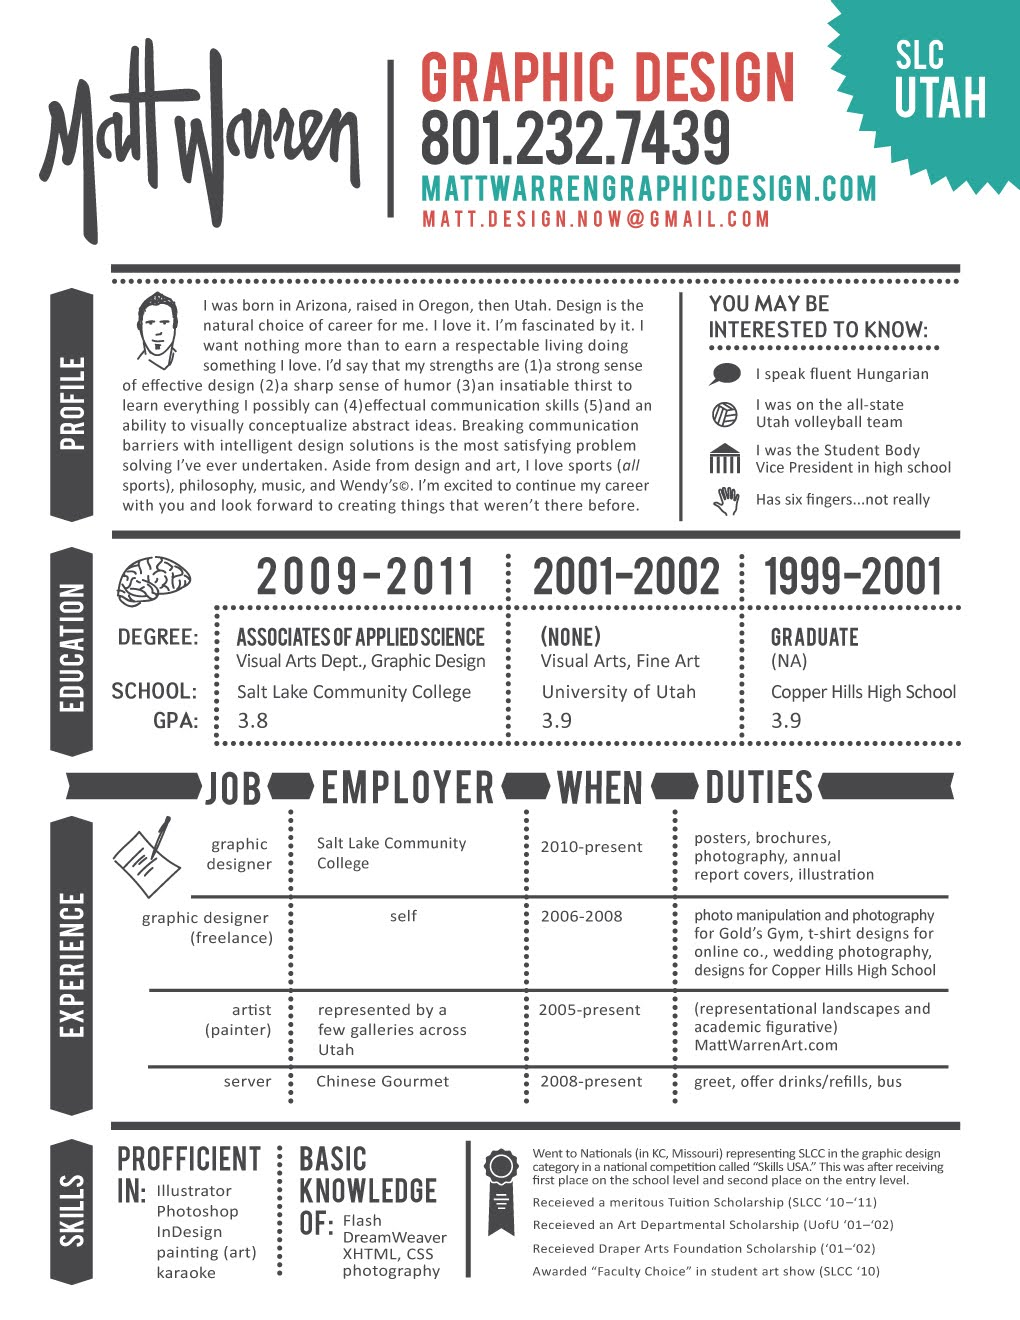 Opposenewapstandardsus  Pretty  Images About Hire Me On Pinterest  Graphic Designer Resume  With Likable  Images About Hire Me On Pinterest  Graphic Designer Resume Resume Design And Resume With Adorable Sports Resume Template Also Patient Care Coordinator Resume In Addition Food And Beverage Manager Resume And Skills To Write On Resume As Well As Resume Objective For High School Student Additionally Substitute Teacher Resume Job Description From Pinterestcom With Opposenewapstandardsus  Likable  Images About Hire Me On Pinterest  Graphic Designer Resume  With Adorable  Images About Hire Me On Pinterest  Graphic Designer Resume Resume Design And Resume And Pretty Sports Resume Template Also Patient Care Coordinator Resume In Addition Food And Beverage Manager Resume From Pinterestcom